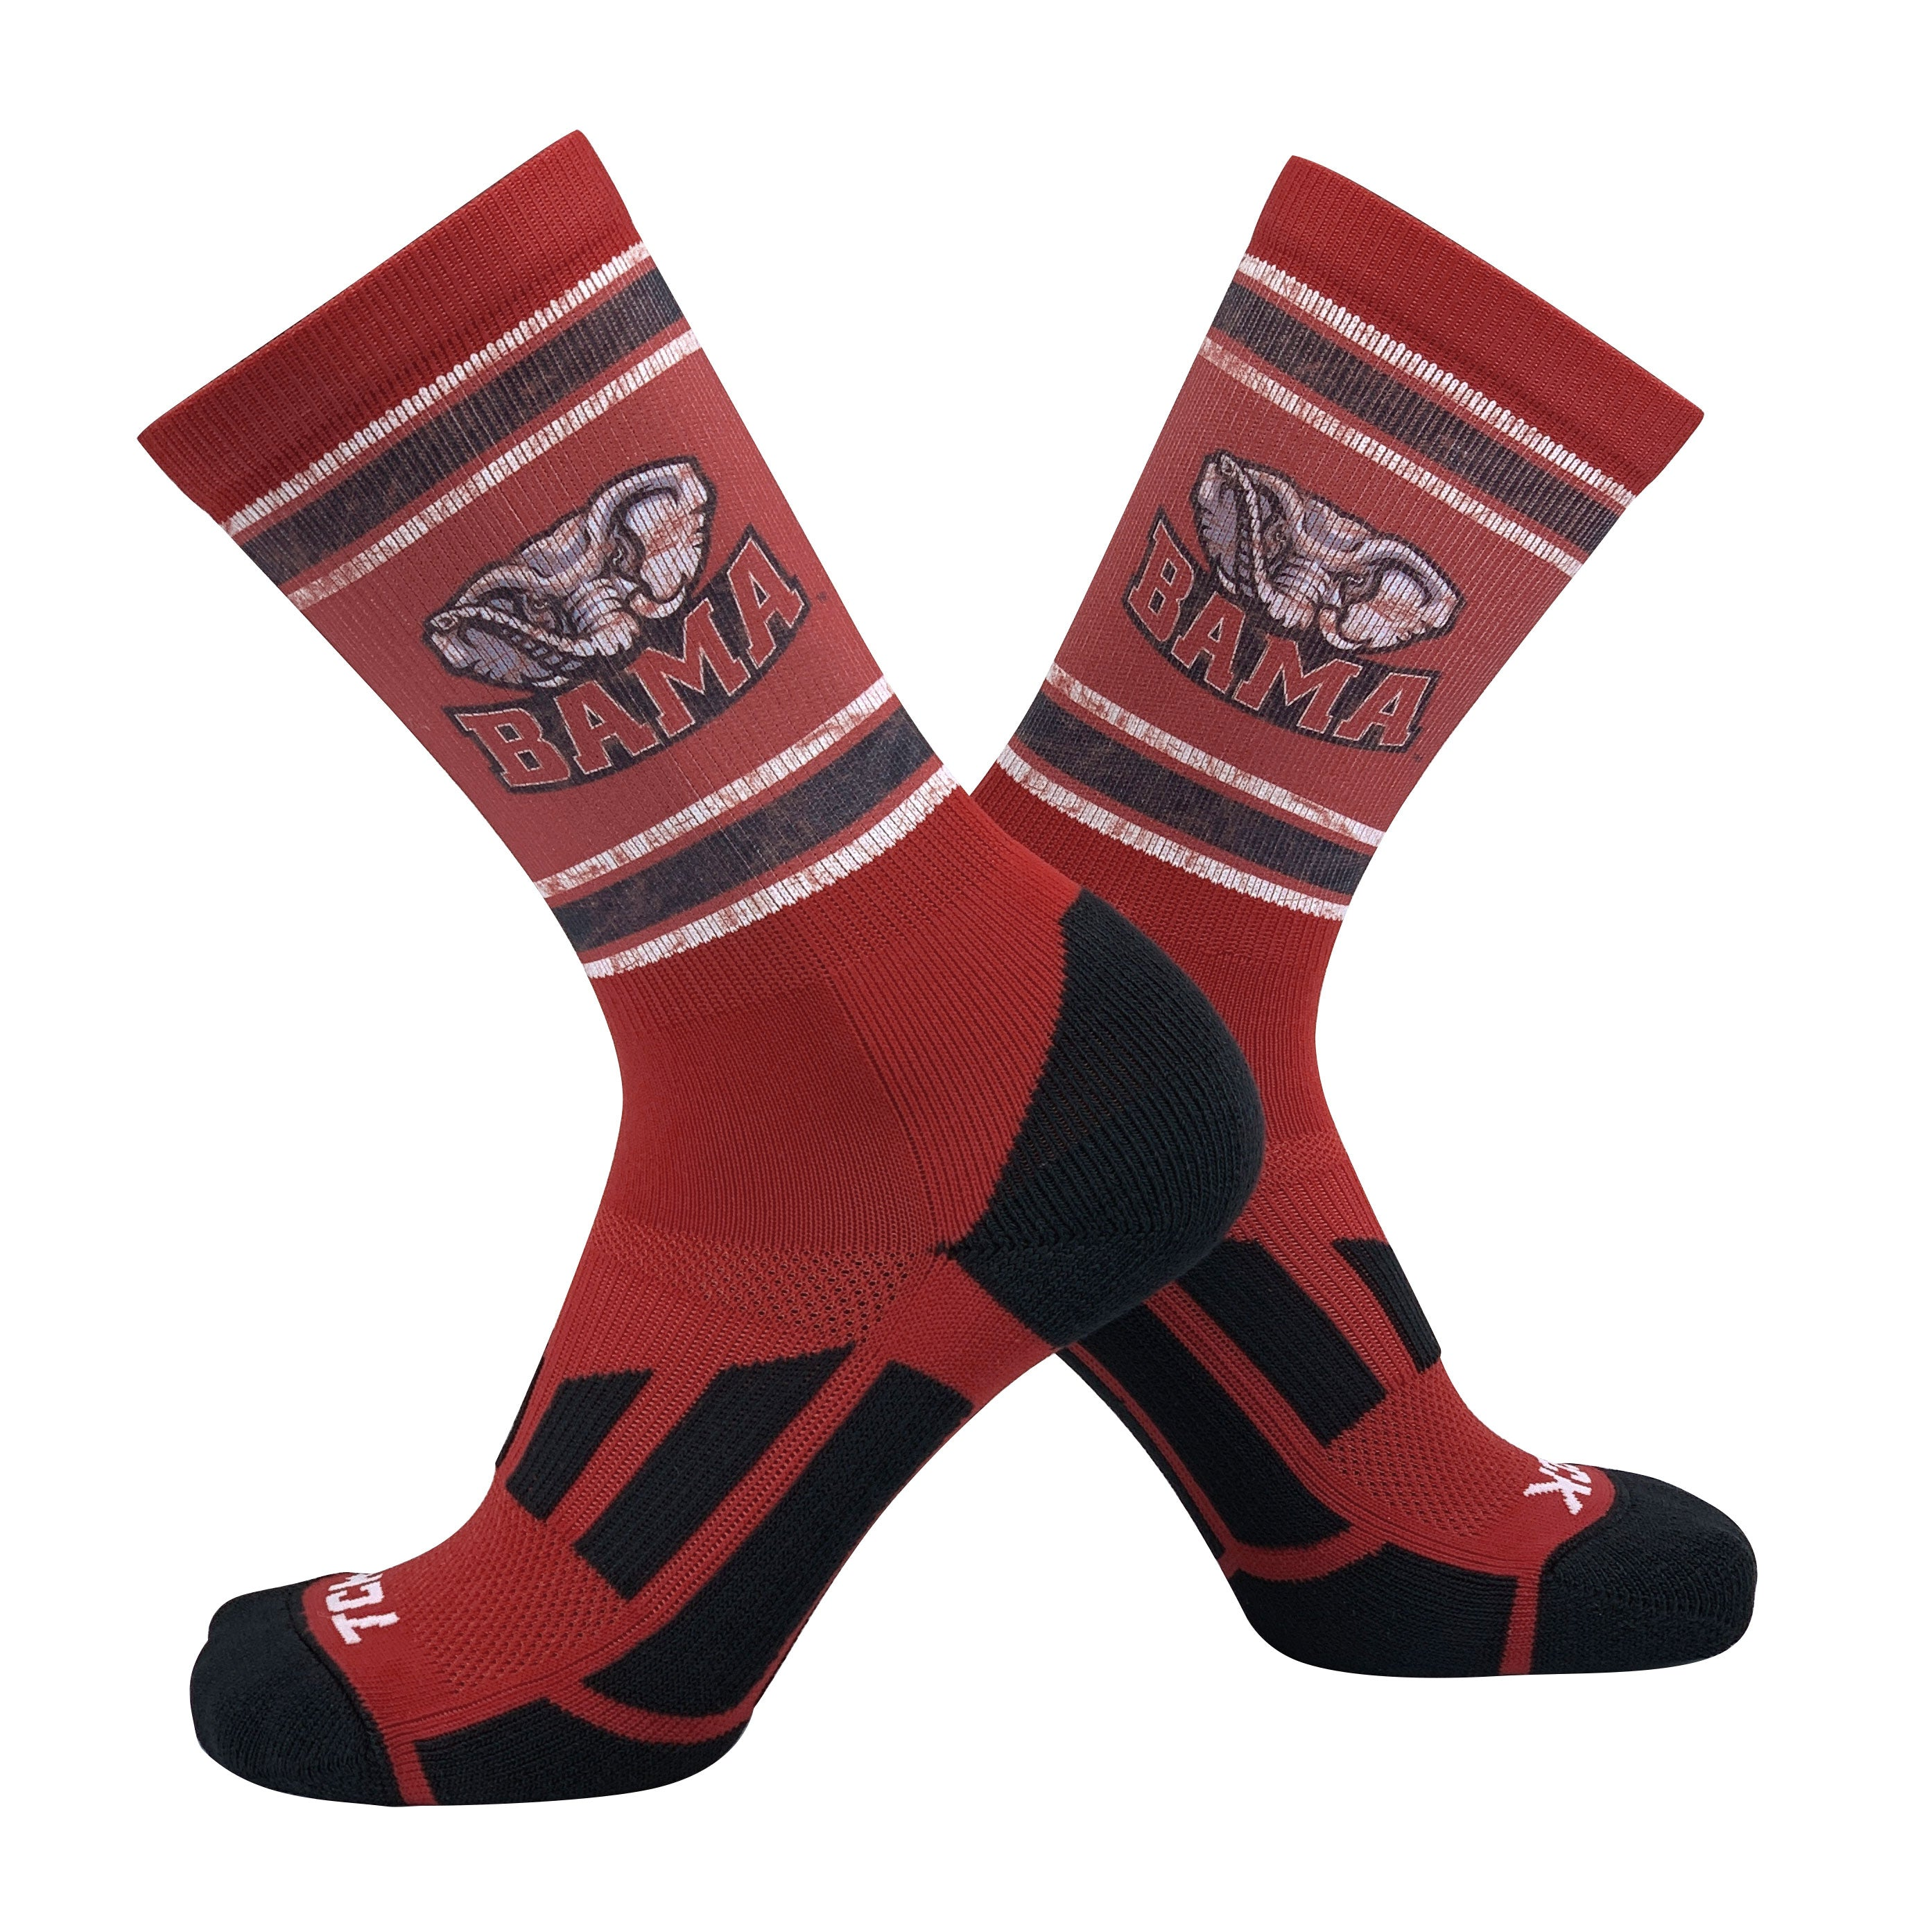 TCK Vintage Alabama Crimson Tide Roll Tide Crew Socks (8-13)